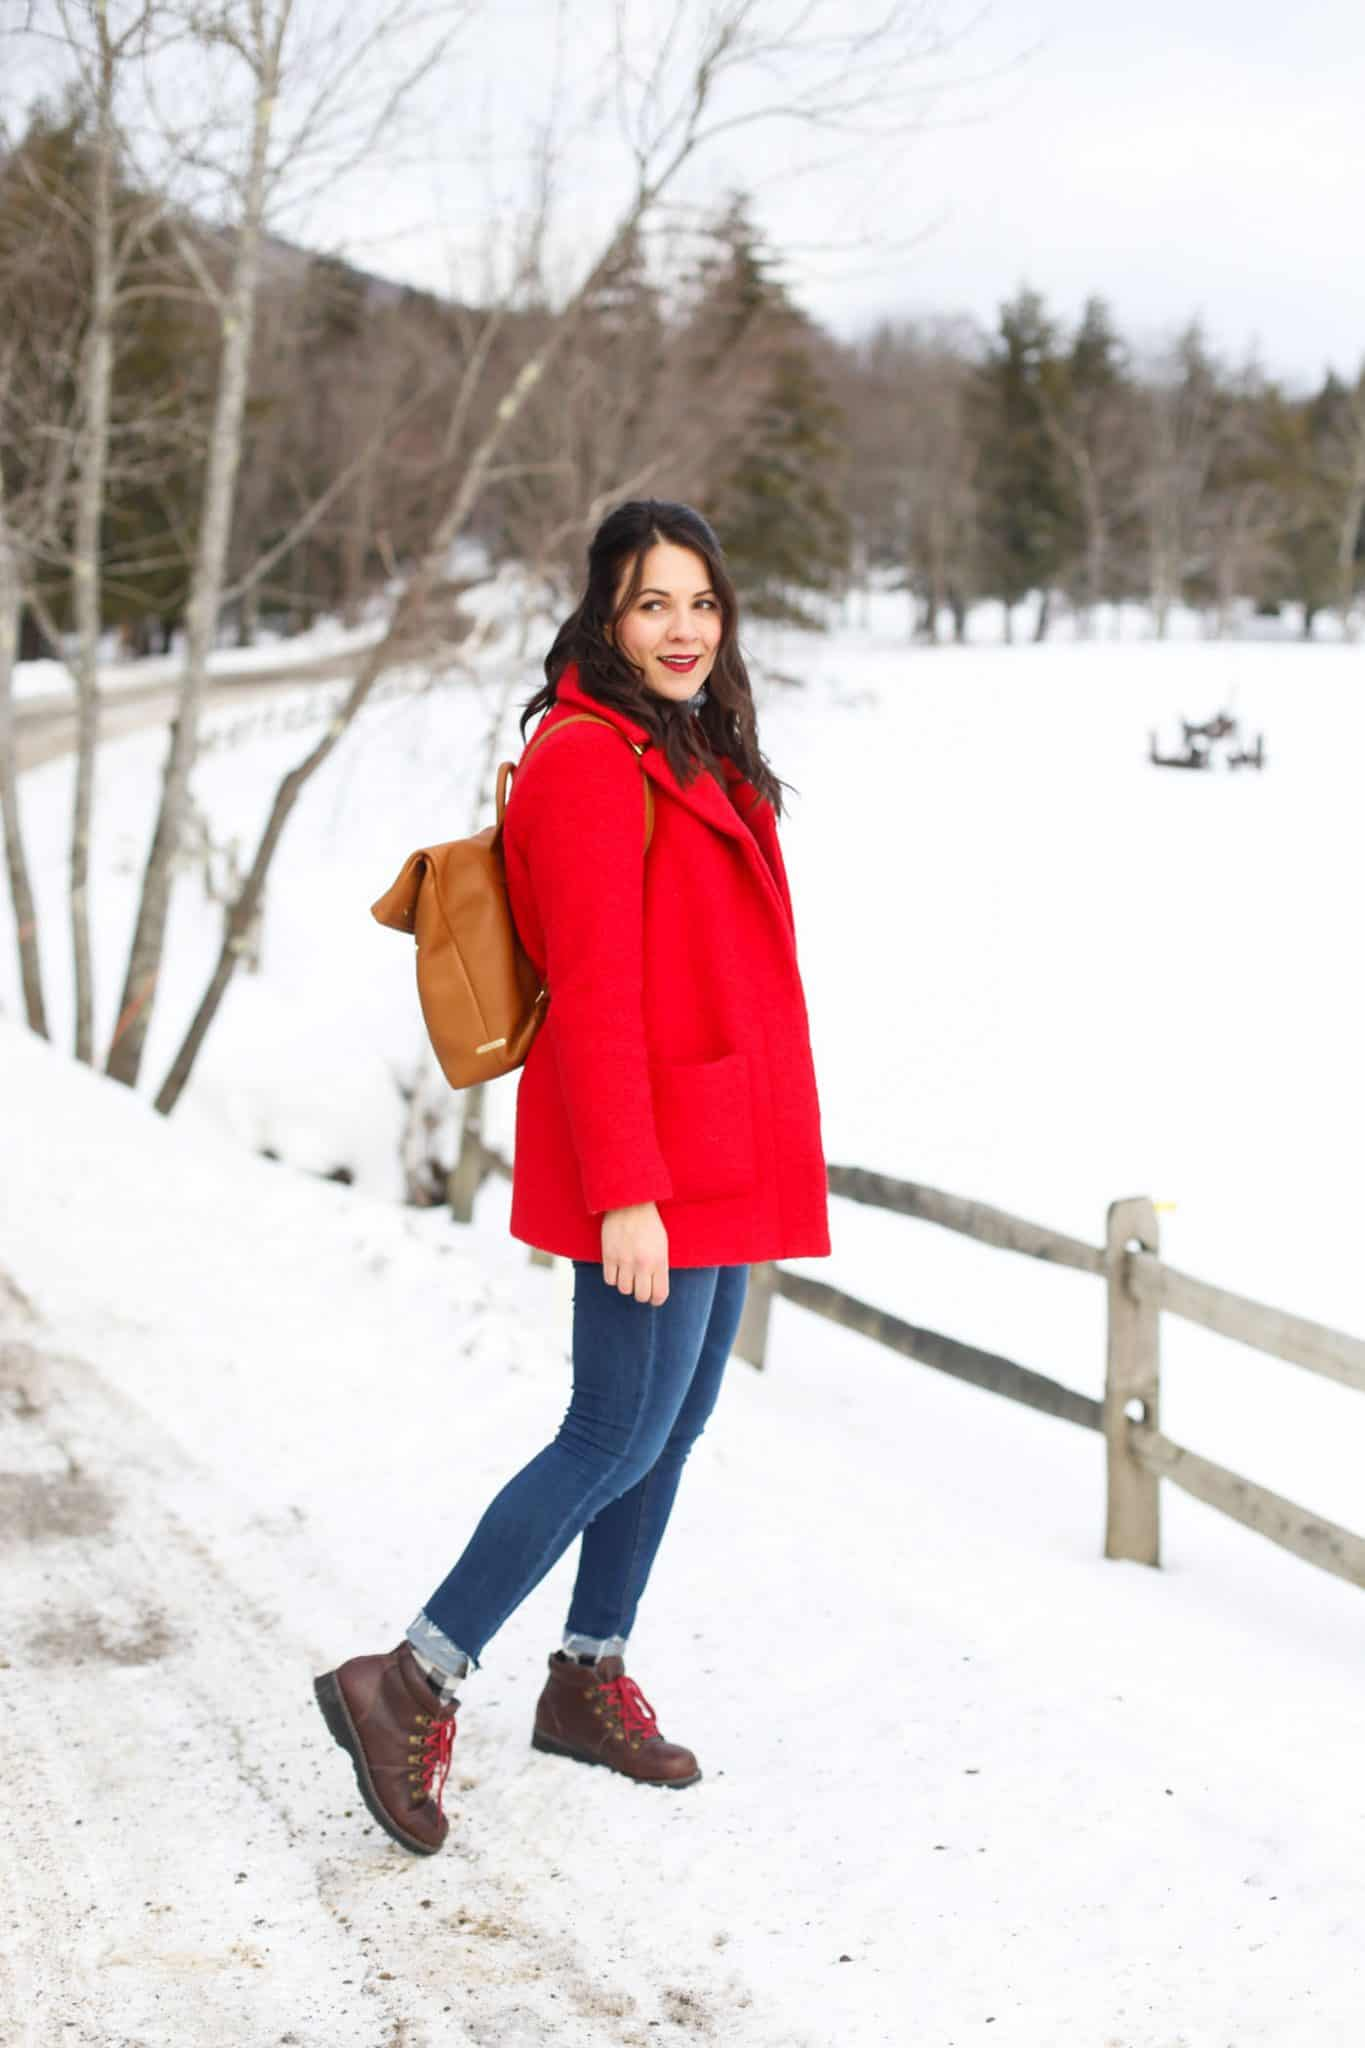 red winter coat, winter style, winter fashion, winter wonderland, Vermont, Stowe - My Style Vita @mystylevita